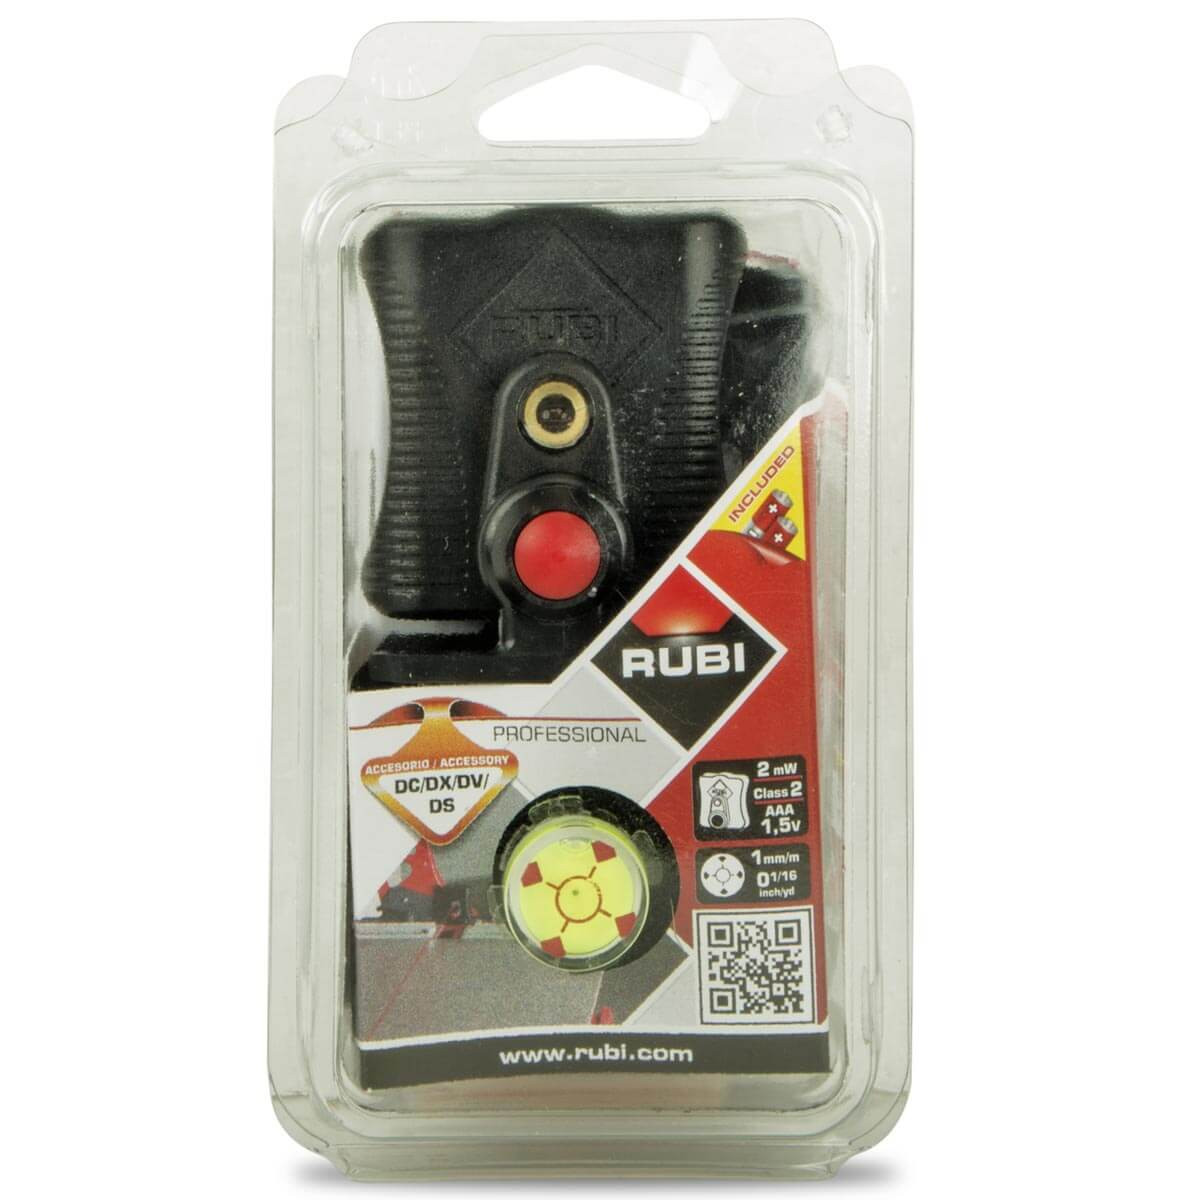 54999 Rubi Laser Level package